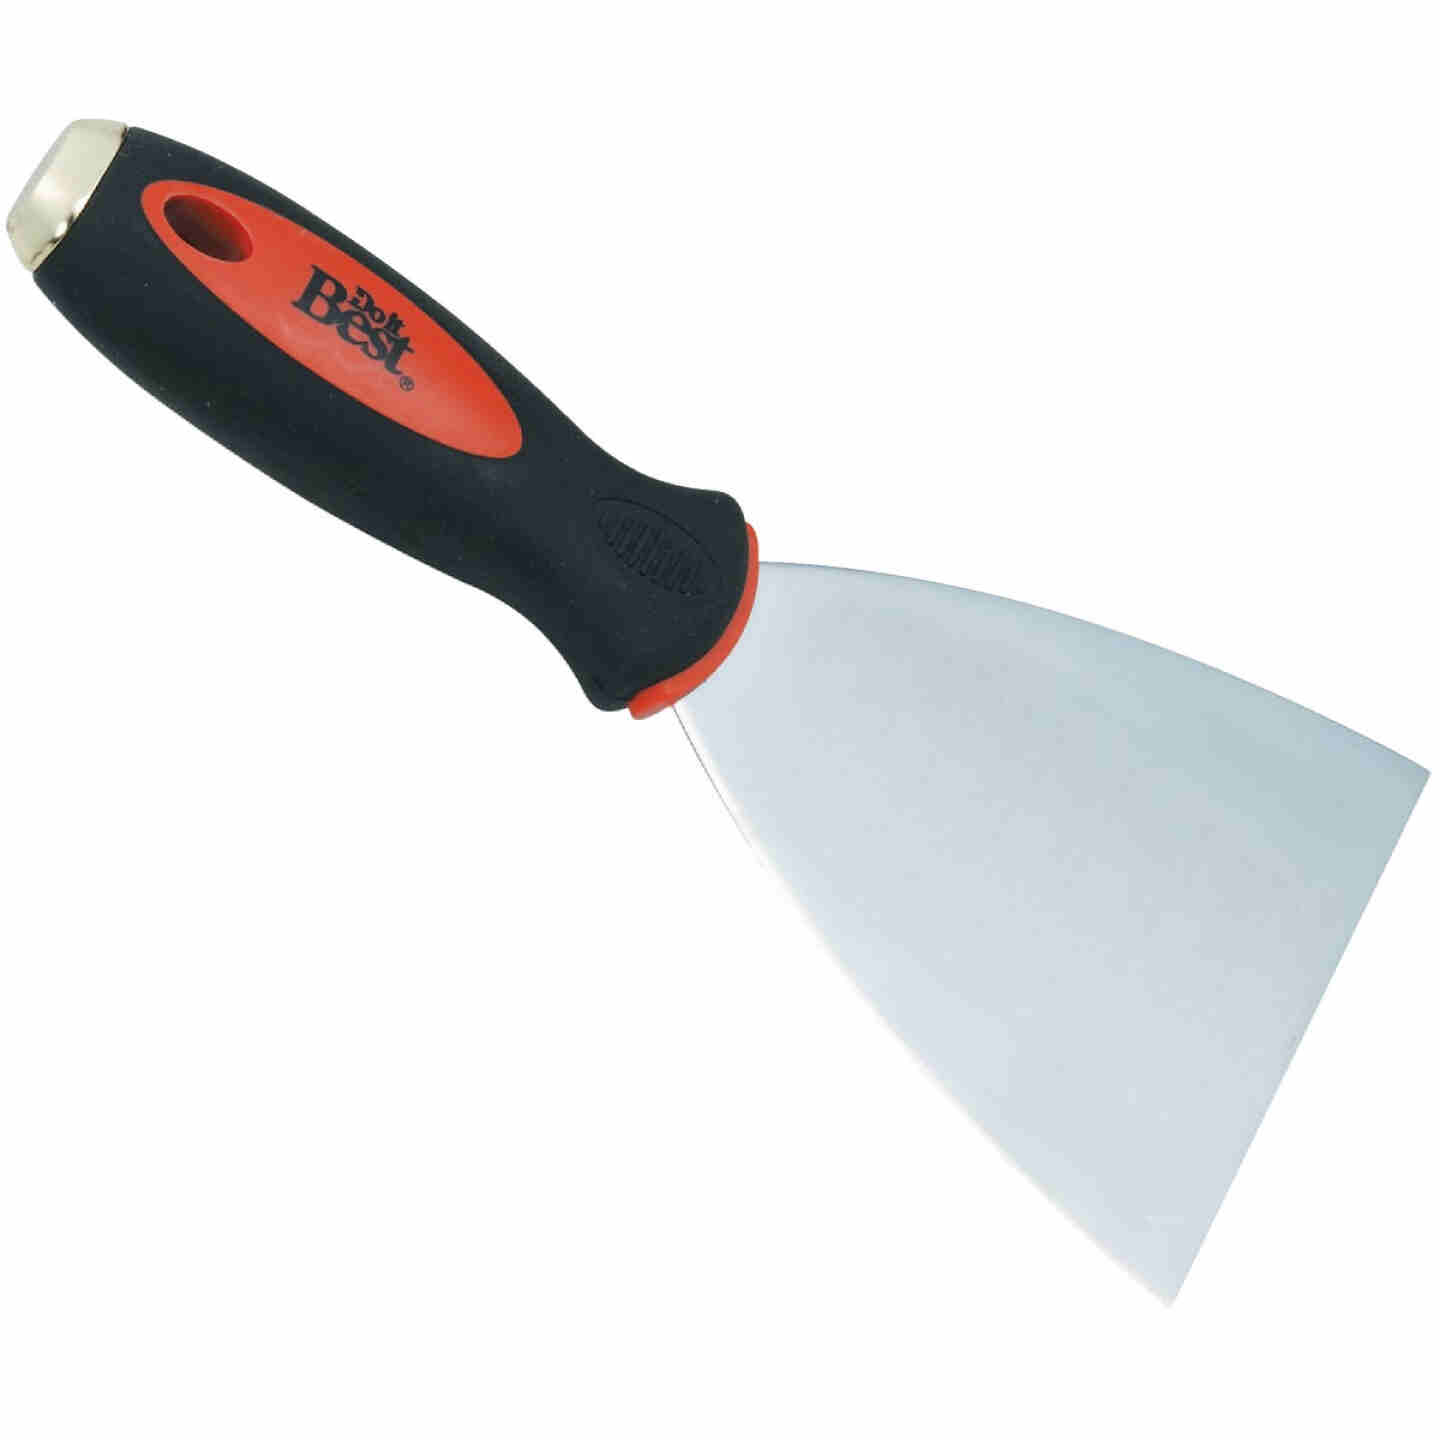 Do it Best 4 In. Flex High-Carbon Steel Broad Knife Image 1